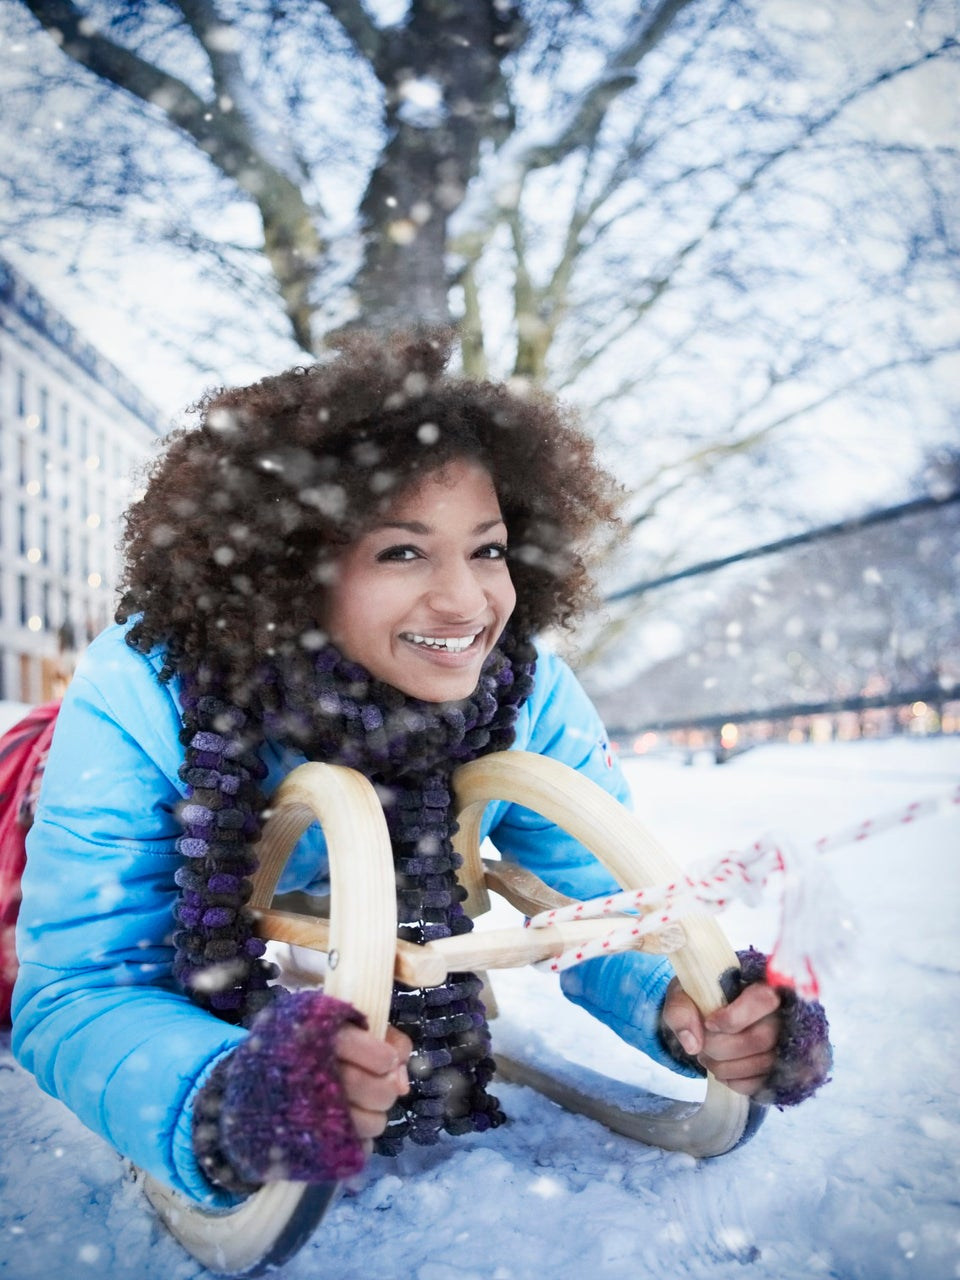 Girlfriends: Winter Outing Ideas for You and the Girls